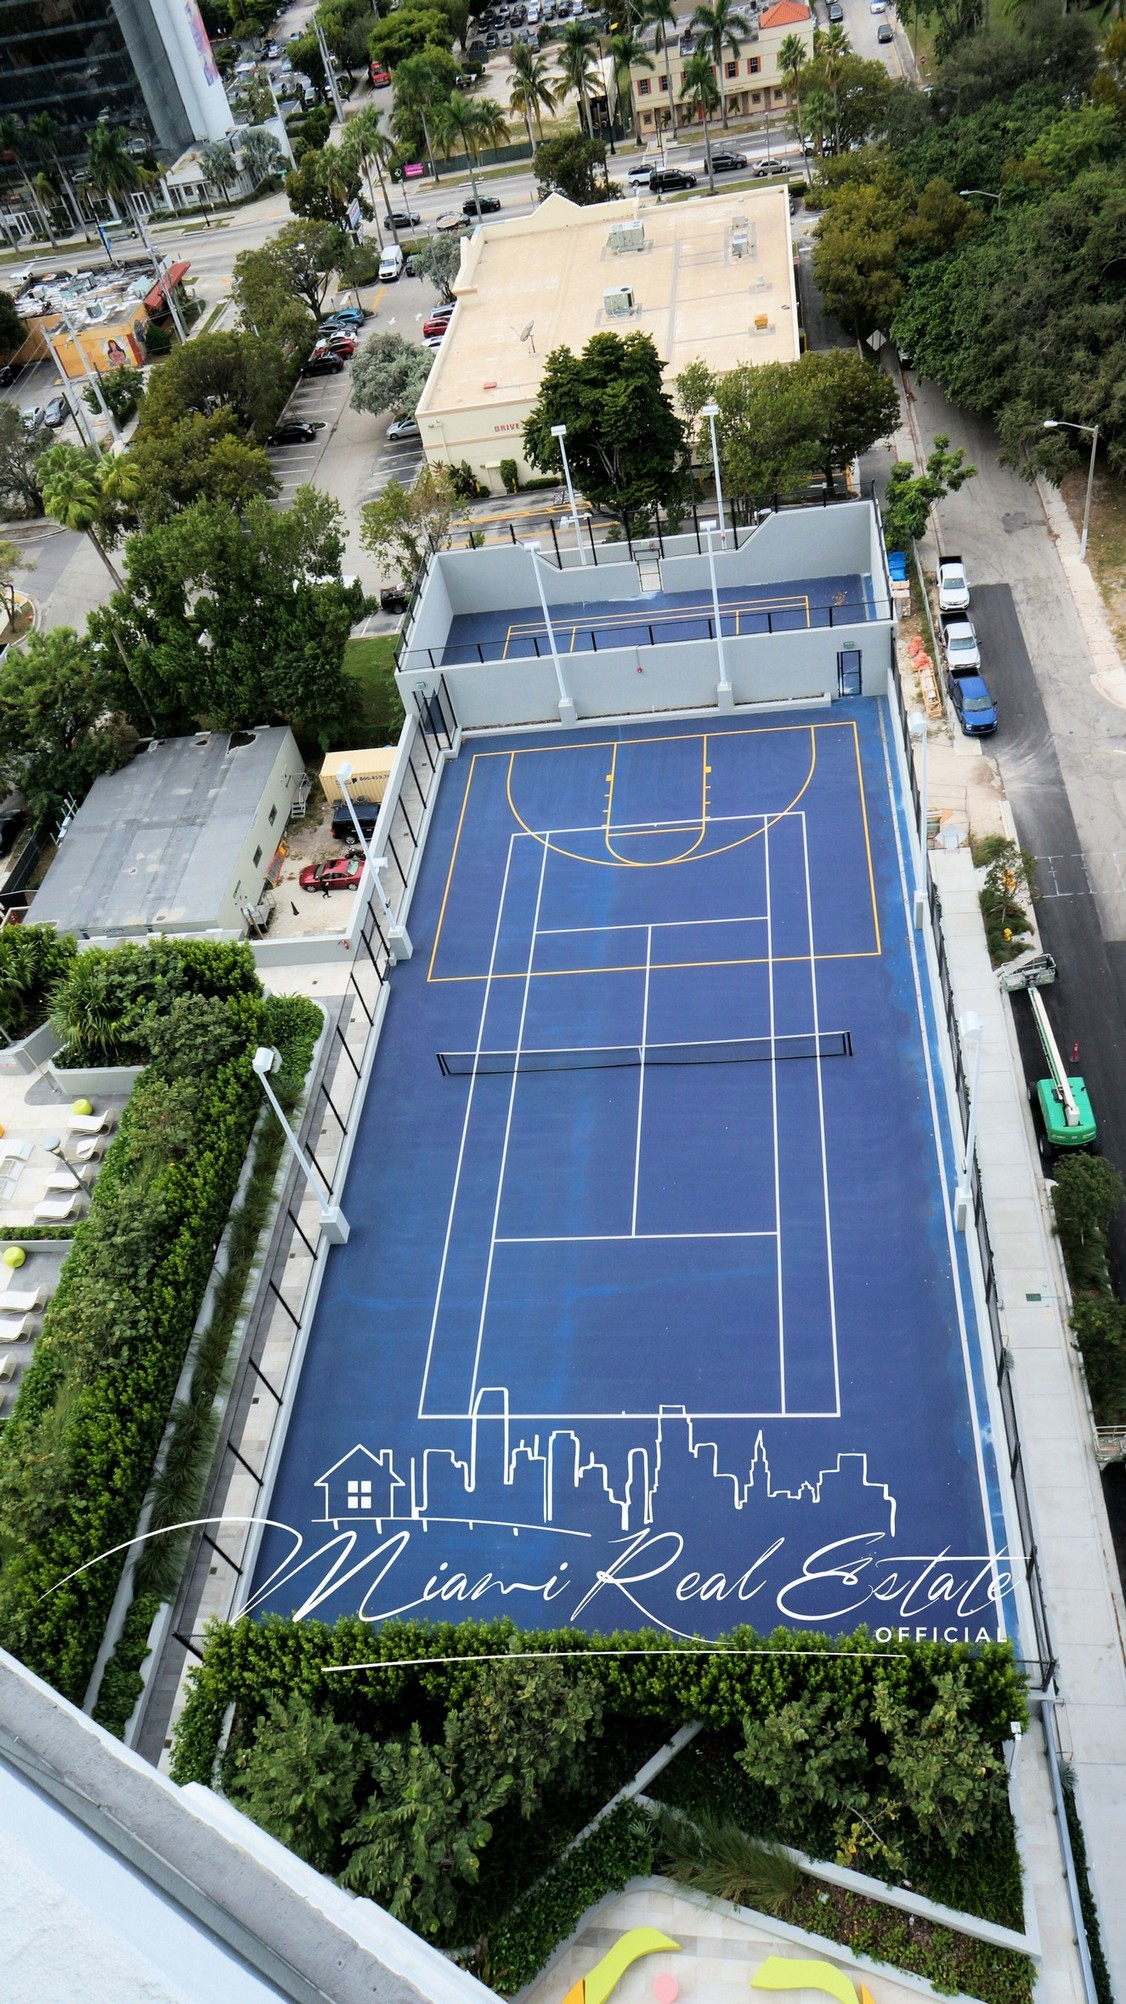 tennis court racket ball courts